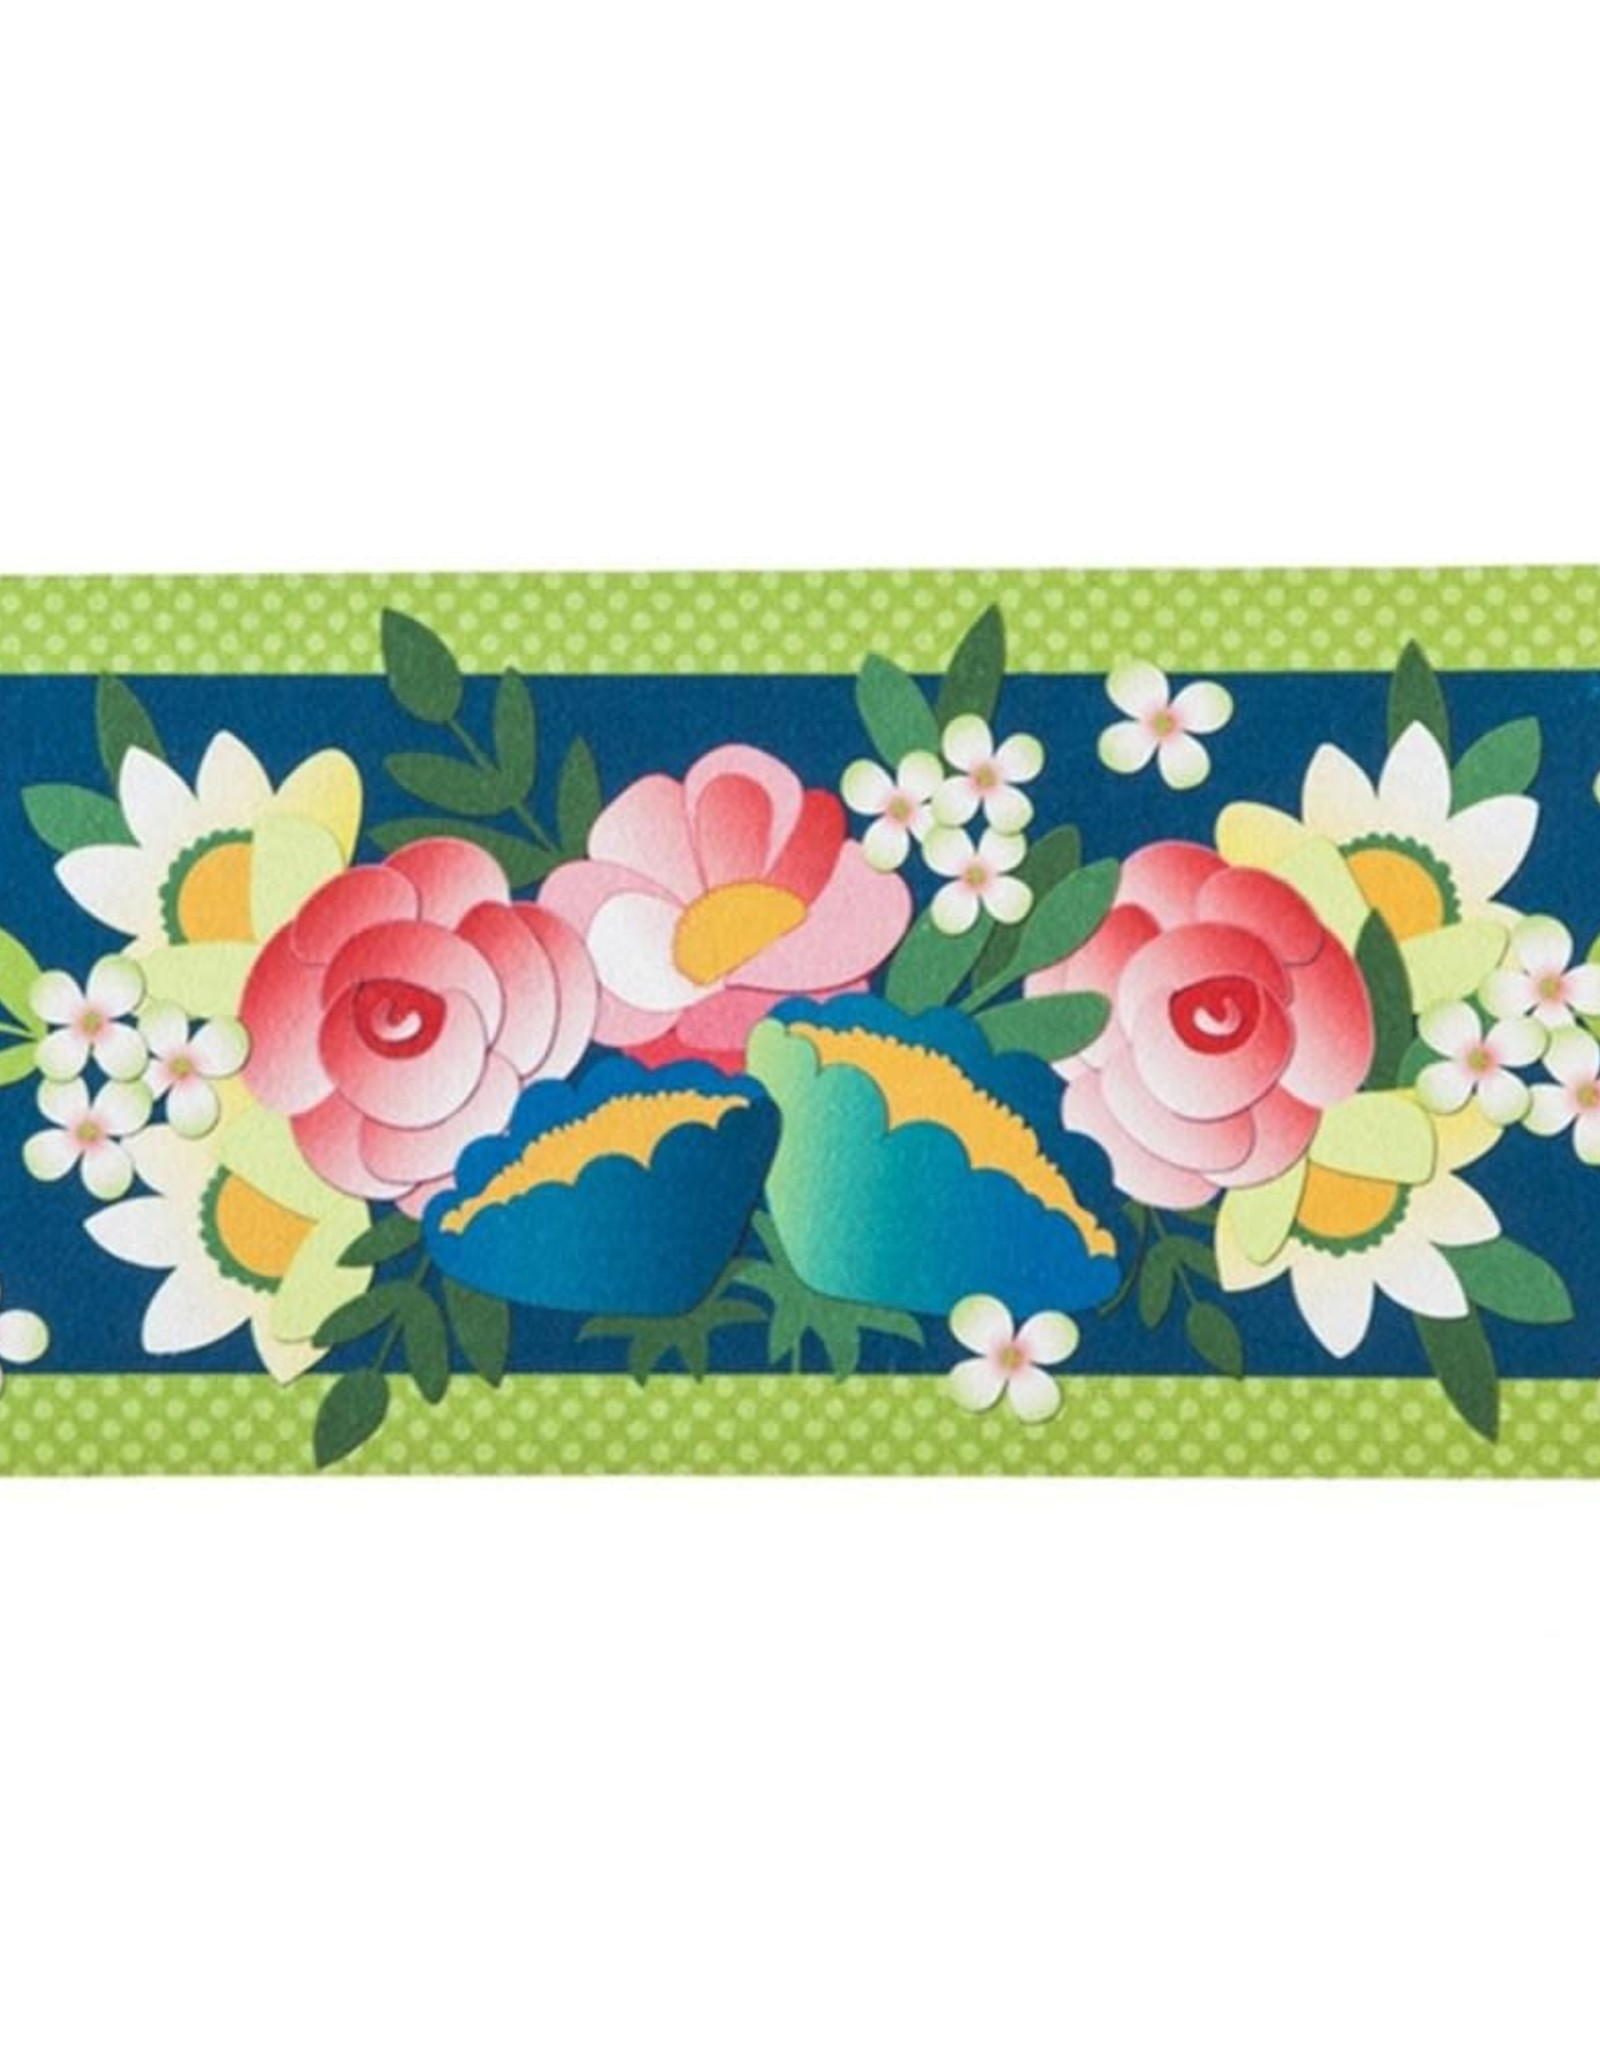 Flower Garden Switch Mat Insert